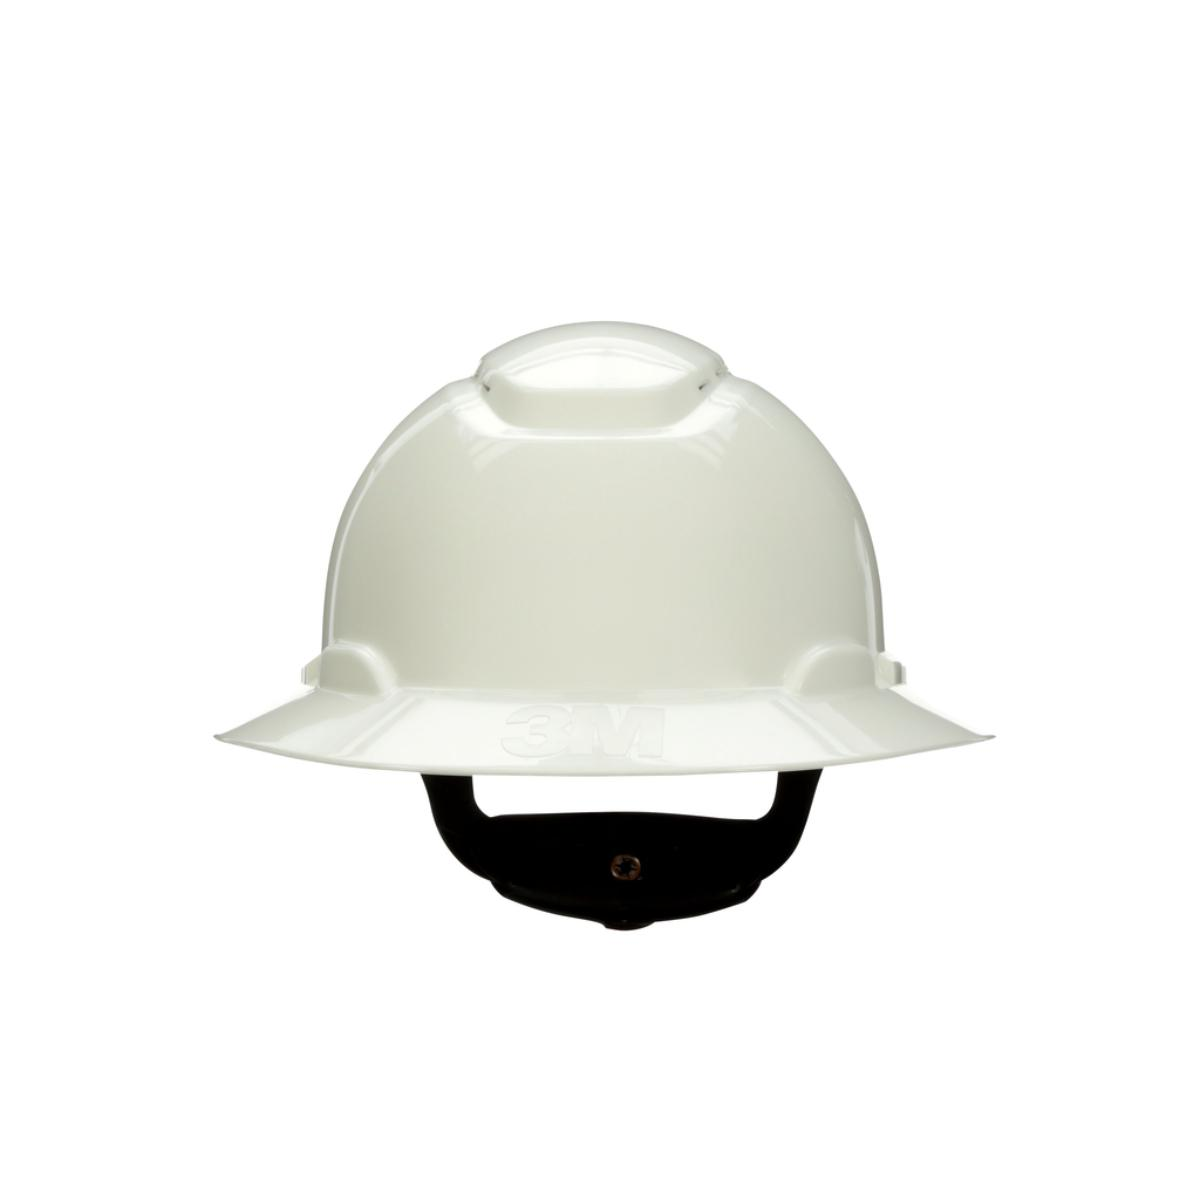 "3Mâ""¢ Full Brim Hard Hat H-801R, White 4-Point Ratchet Suspension,"